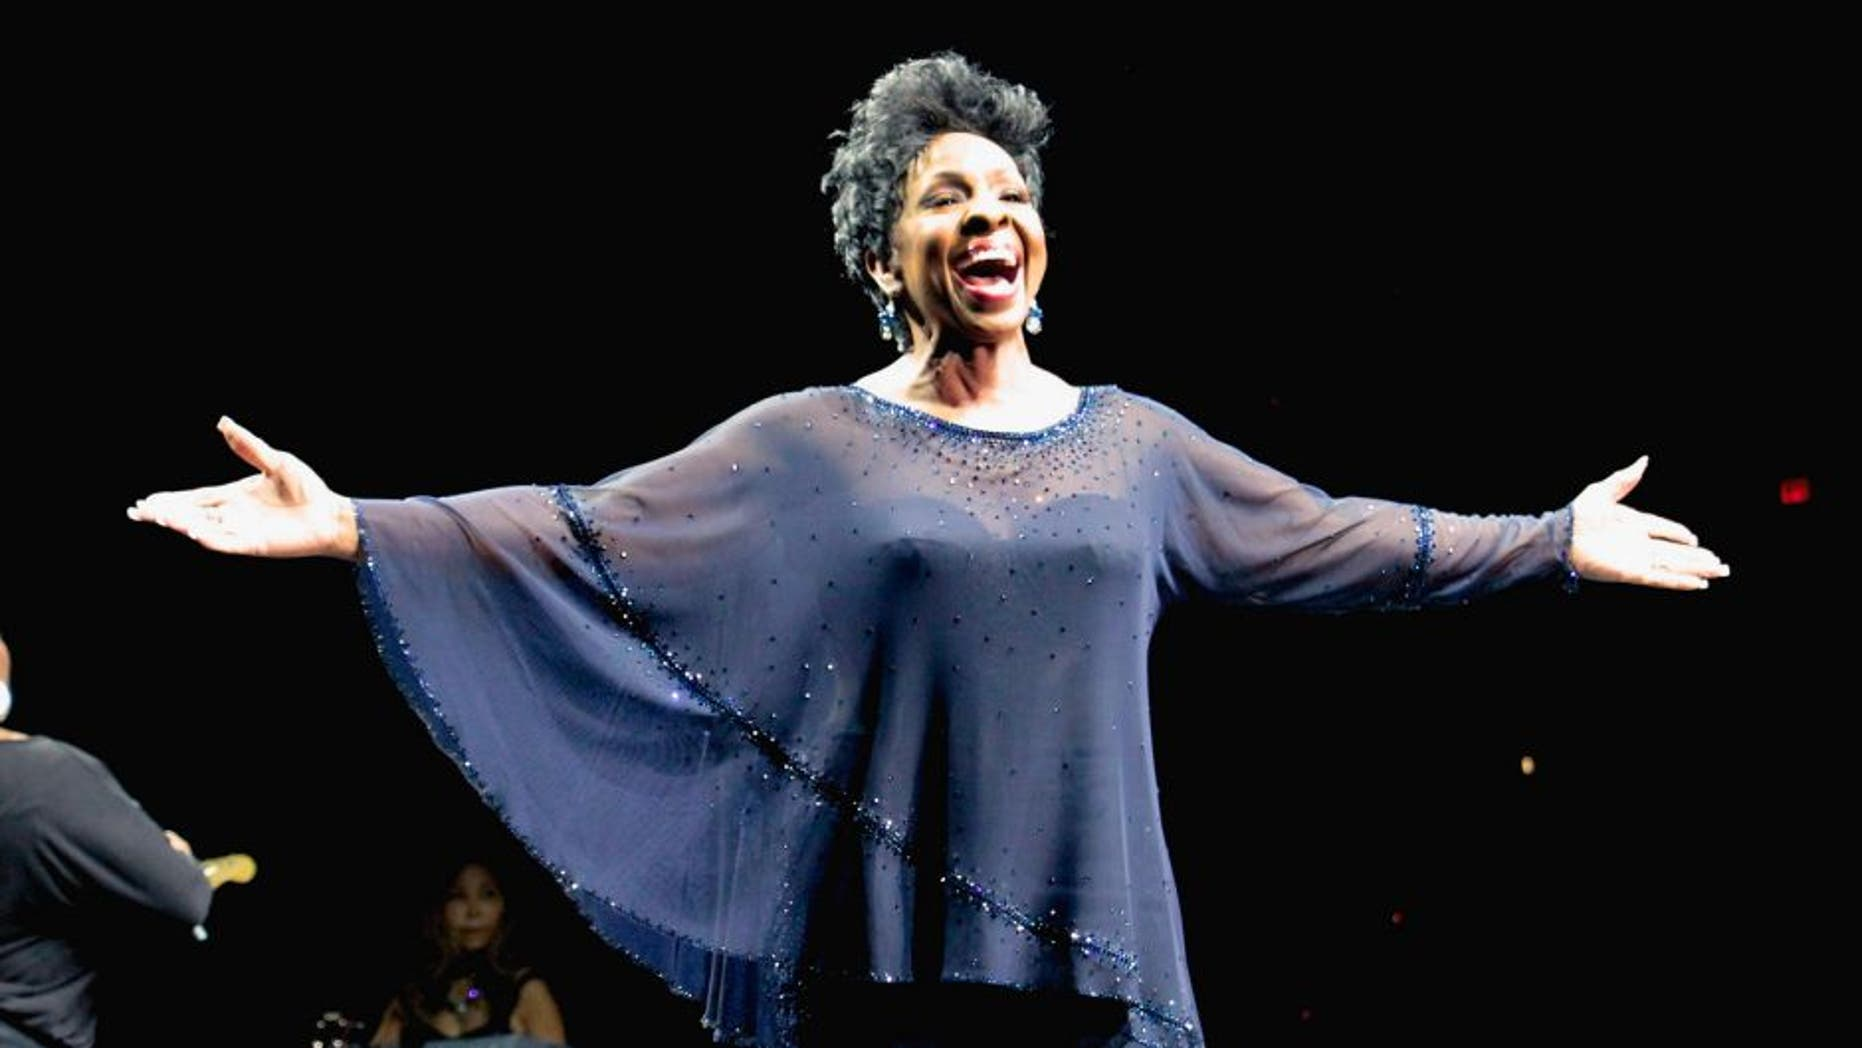 ATLANTIC CITY, NJ - MAY 10: Gladys Knight performs during the 2014 Mother's Day Music Festival at Boardwalk Hall Arena on May 10, 2014 in Atlantic City, New Jersey. (Photo by Donald Kravitz/Getty Images)